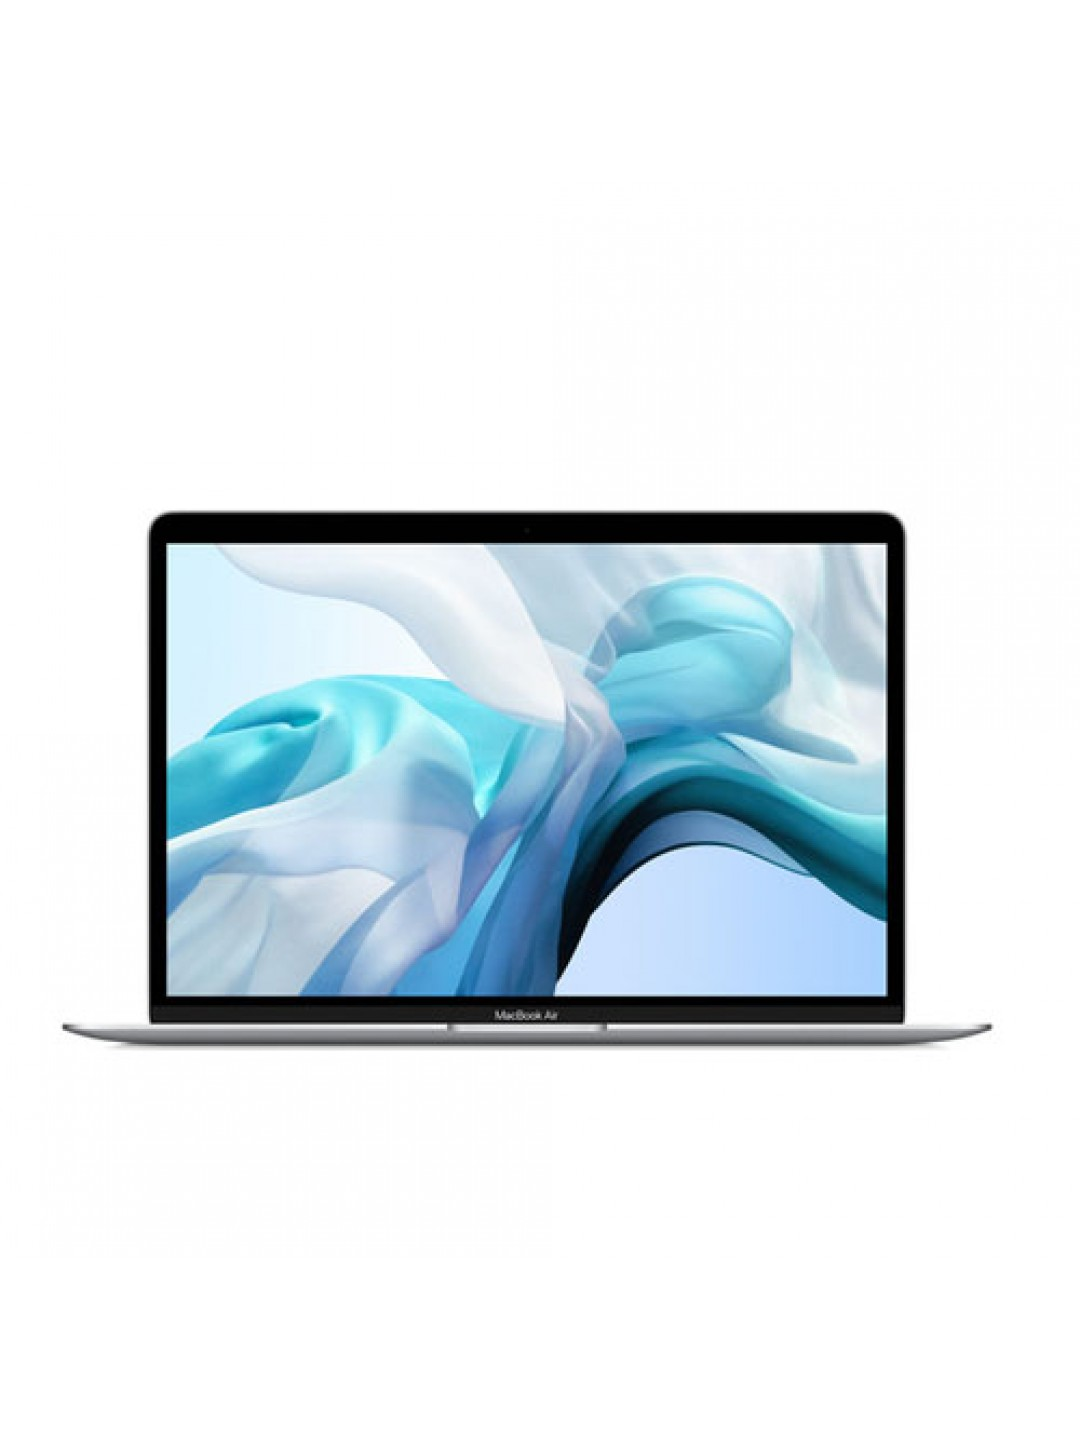 Laptop Macbook Air 2019 MVFH2 13 inch/1.6Ghz Dual Core i5/8GB/128GB/ Intel UHD Graphics 617